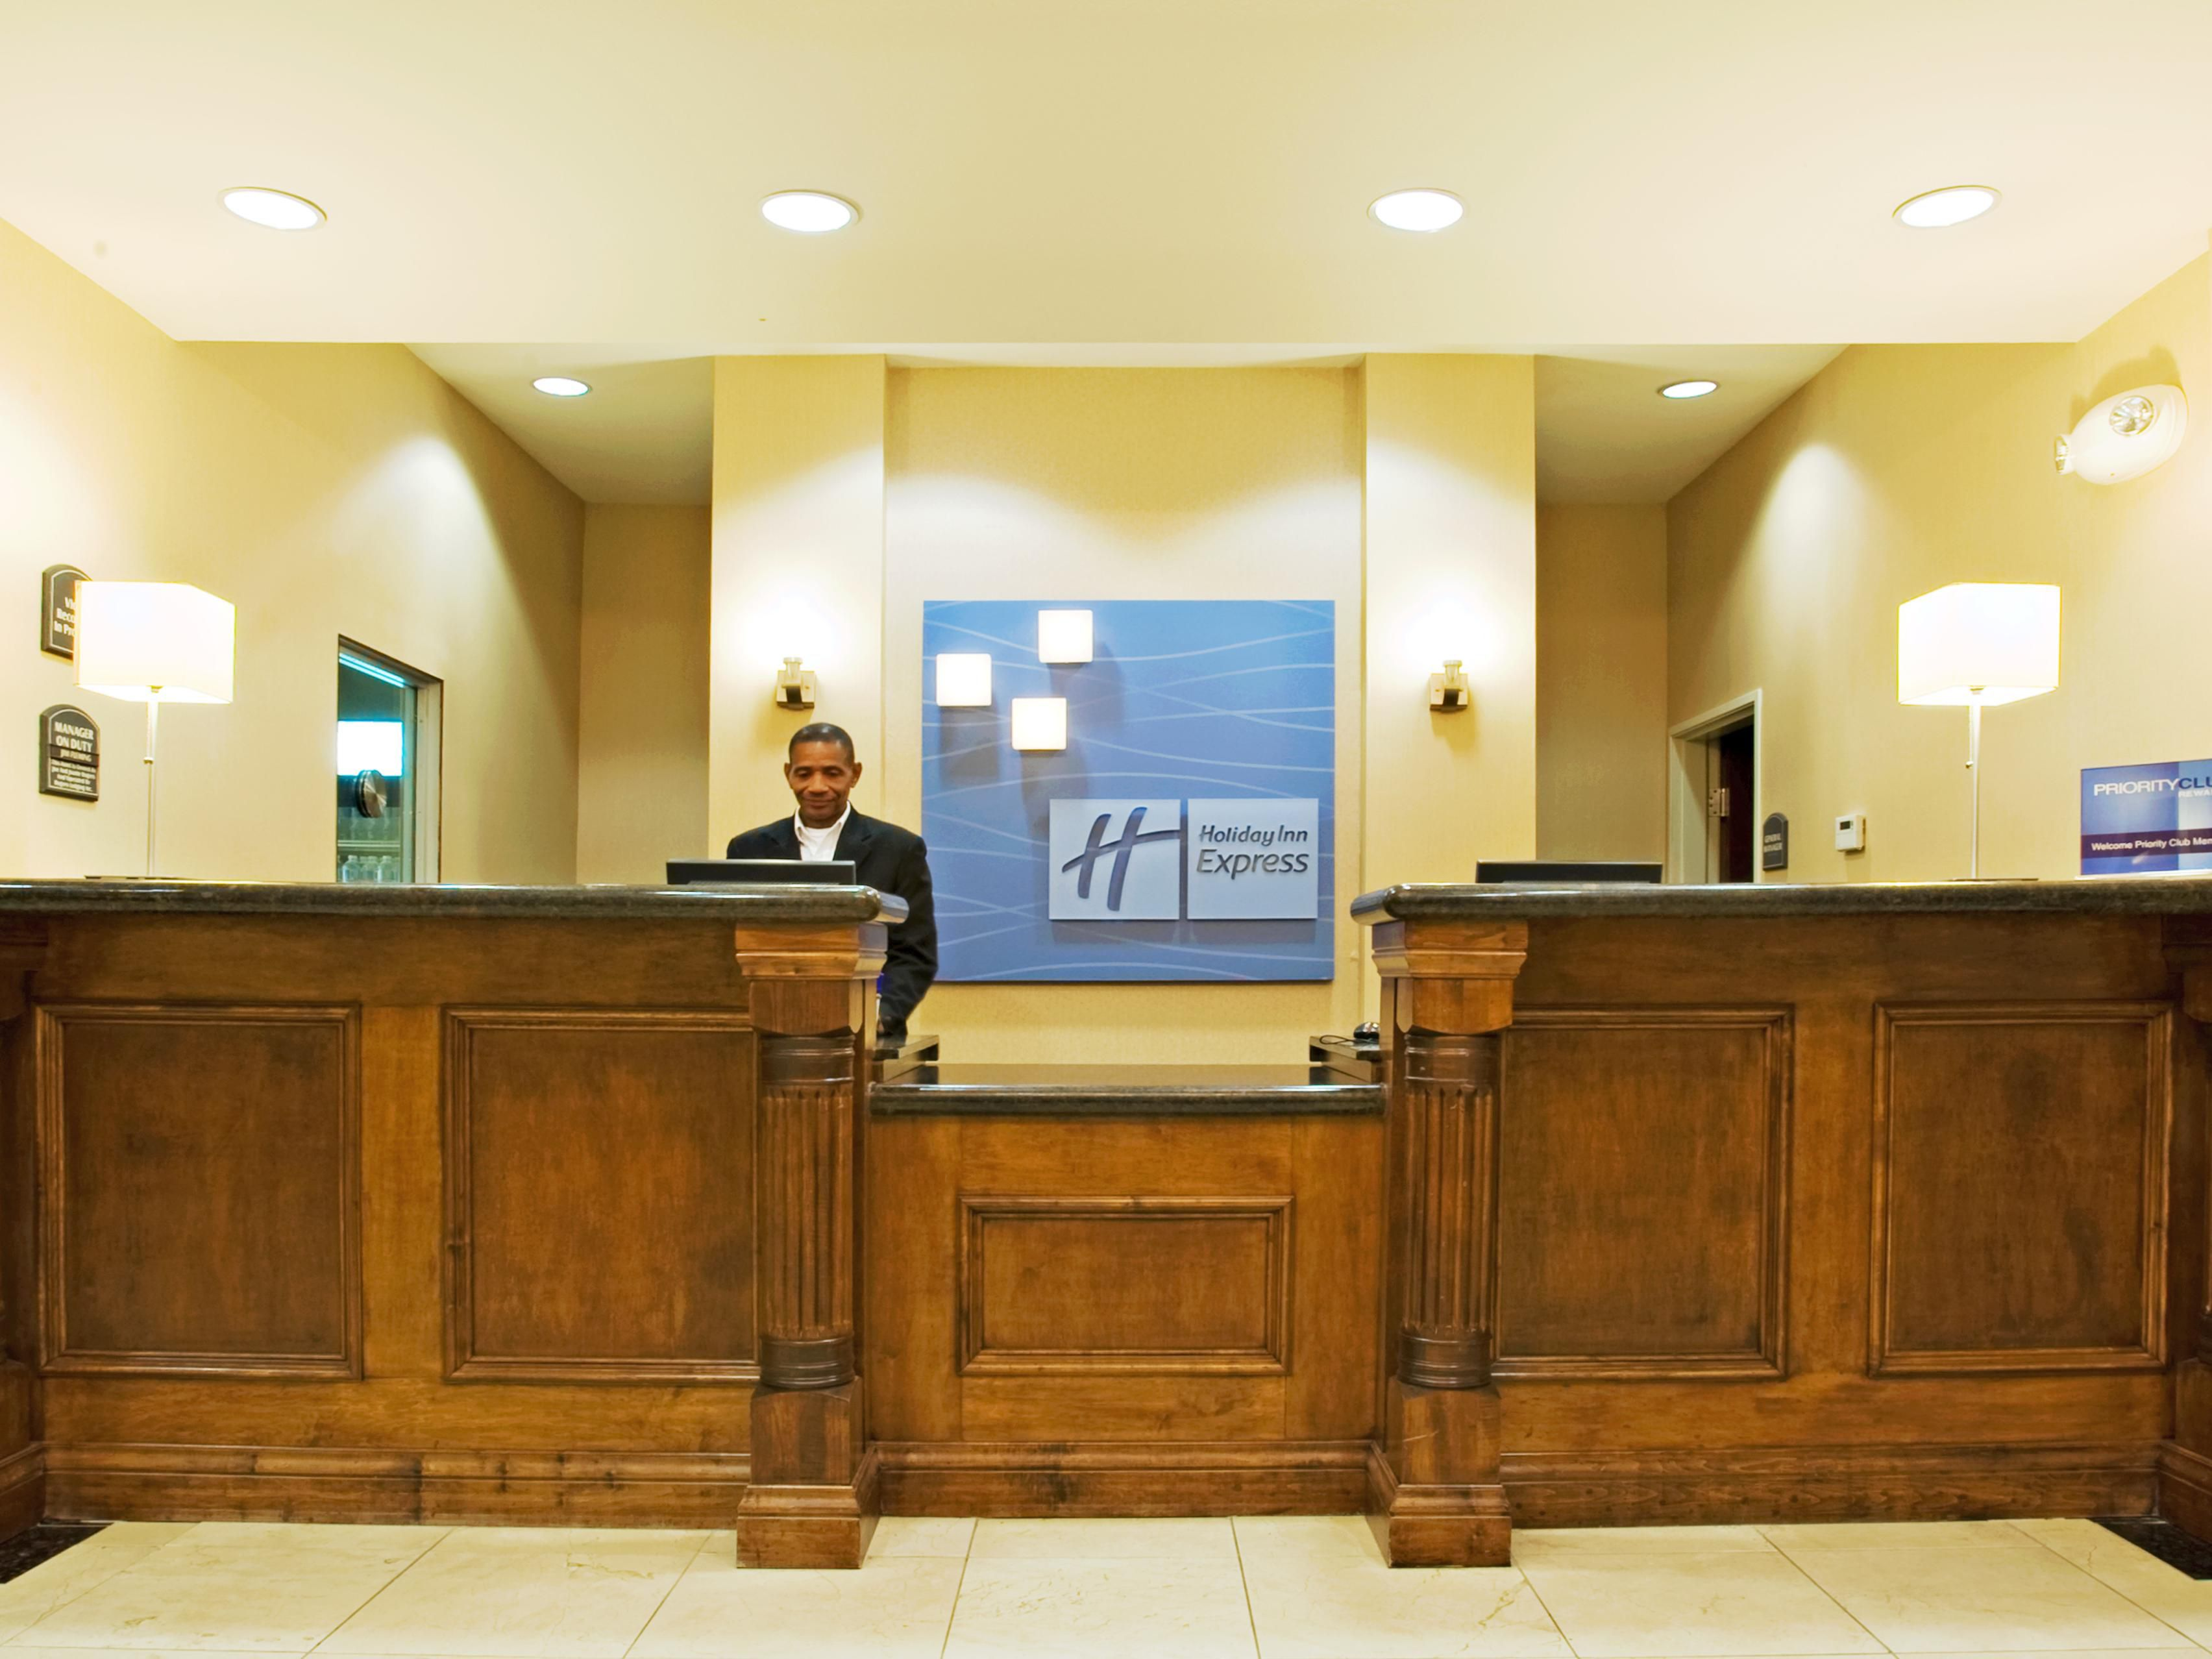 Expect a warm friendly Texas welcome at our front desk.